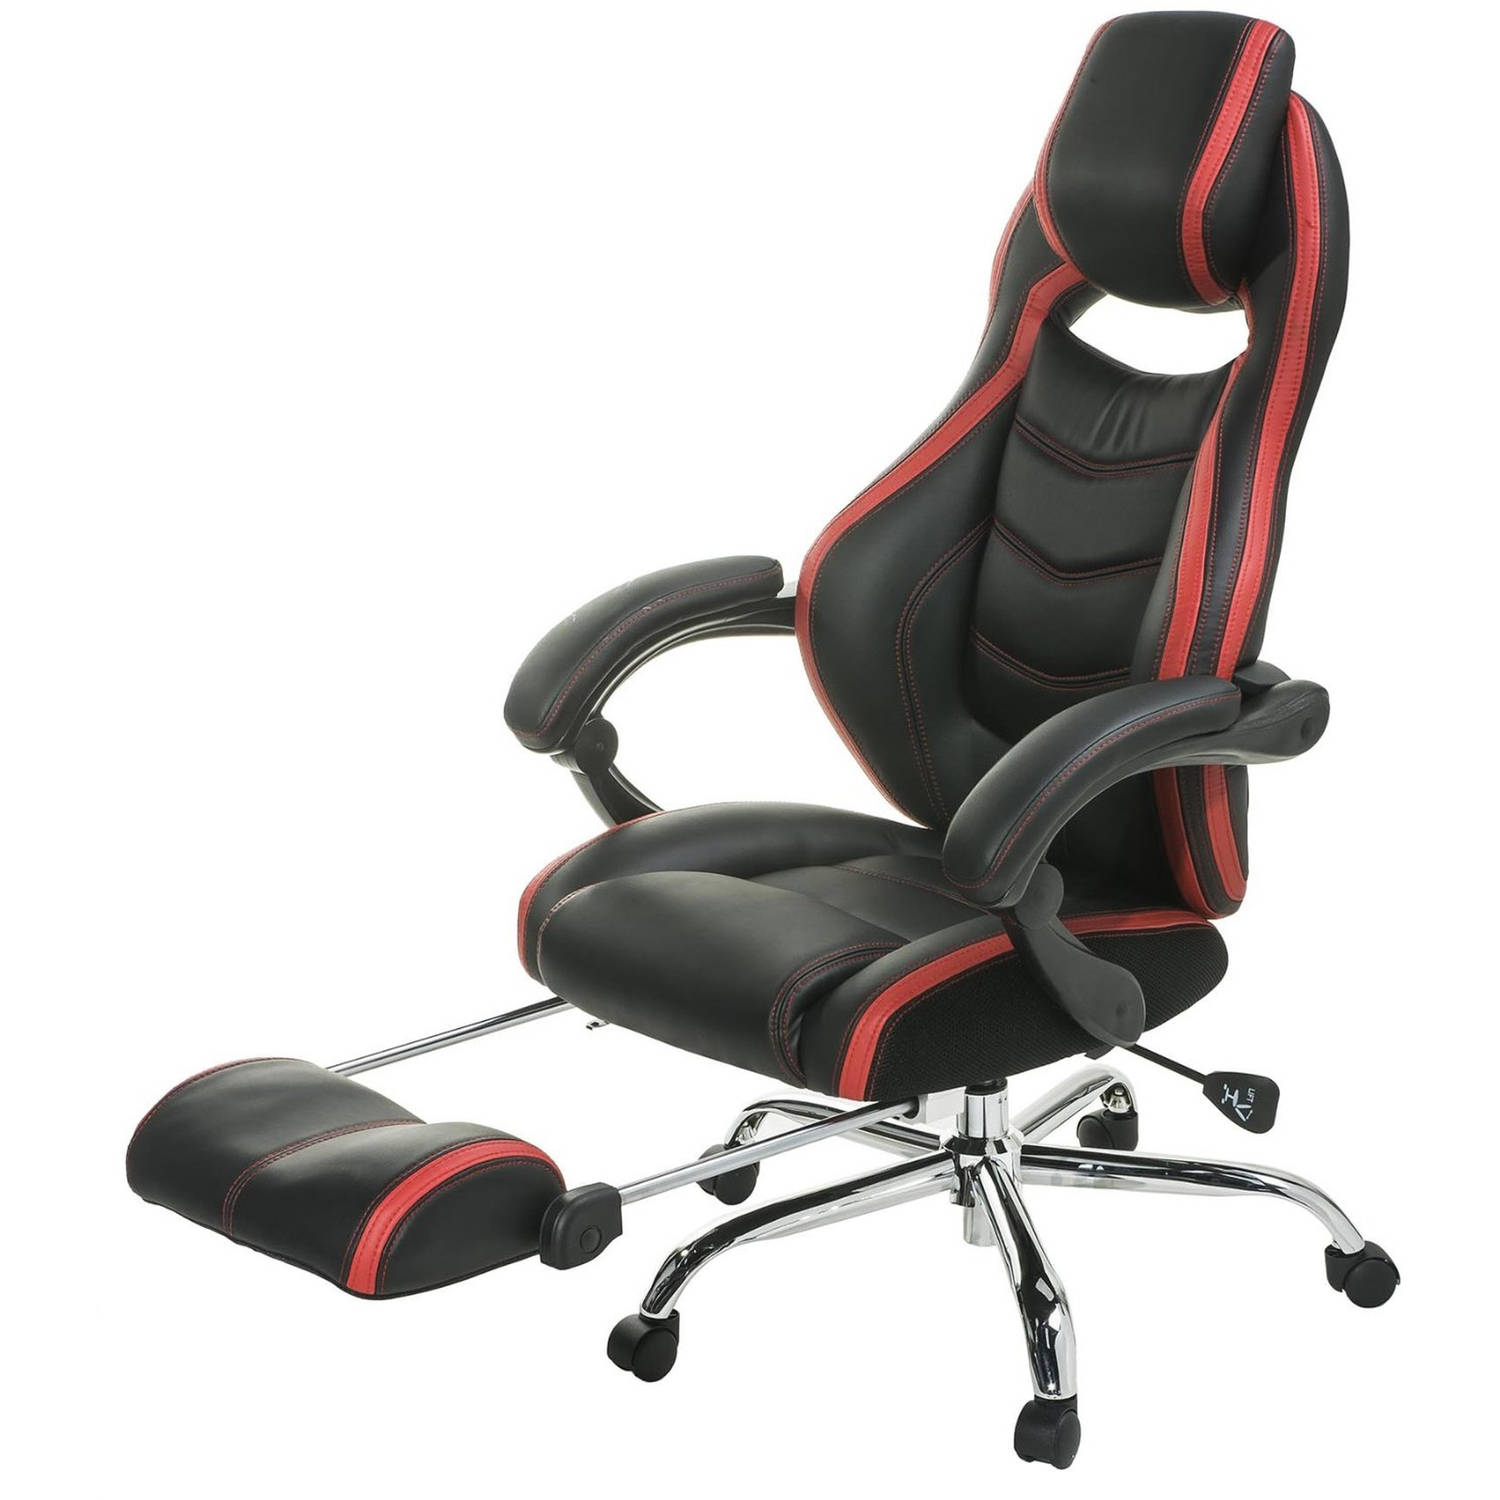 Merax Ergonomic High Back PU Leather Racing Style Gaming Chair with Footrest